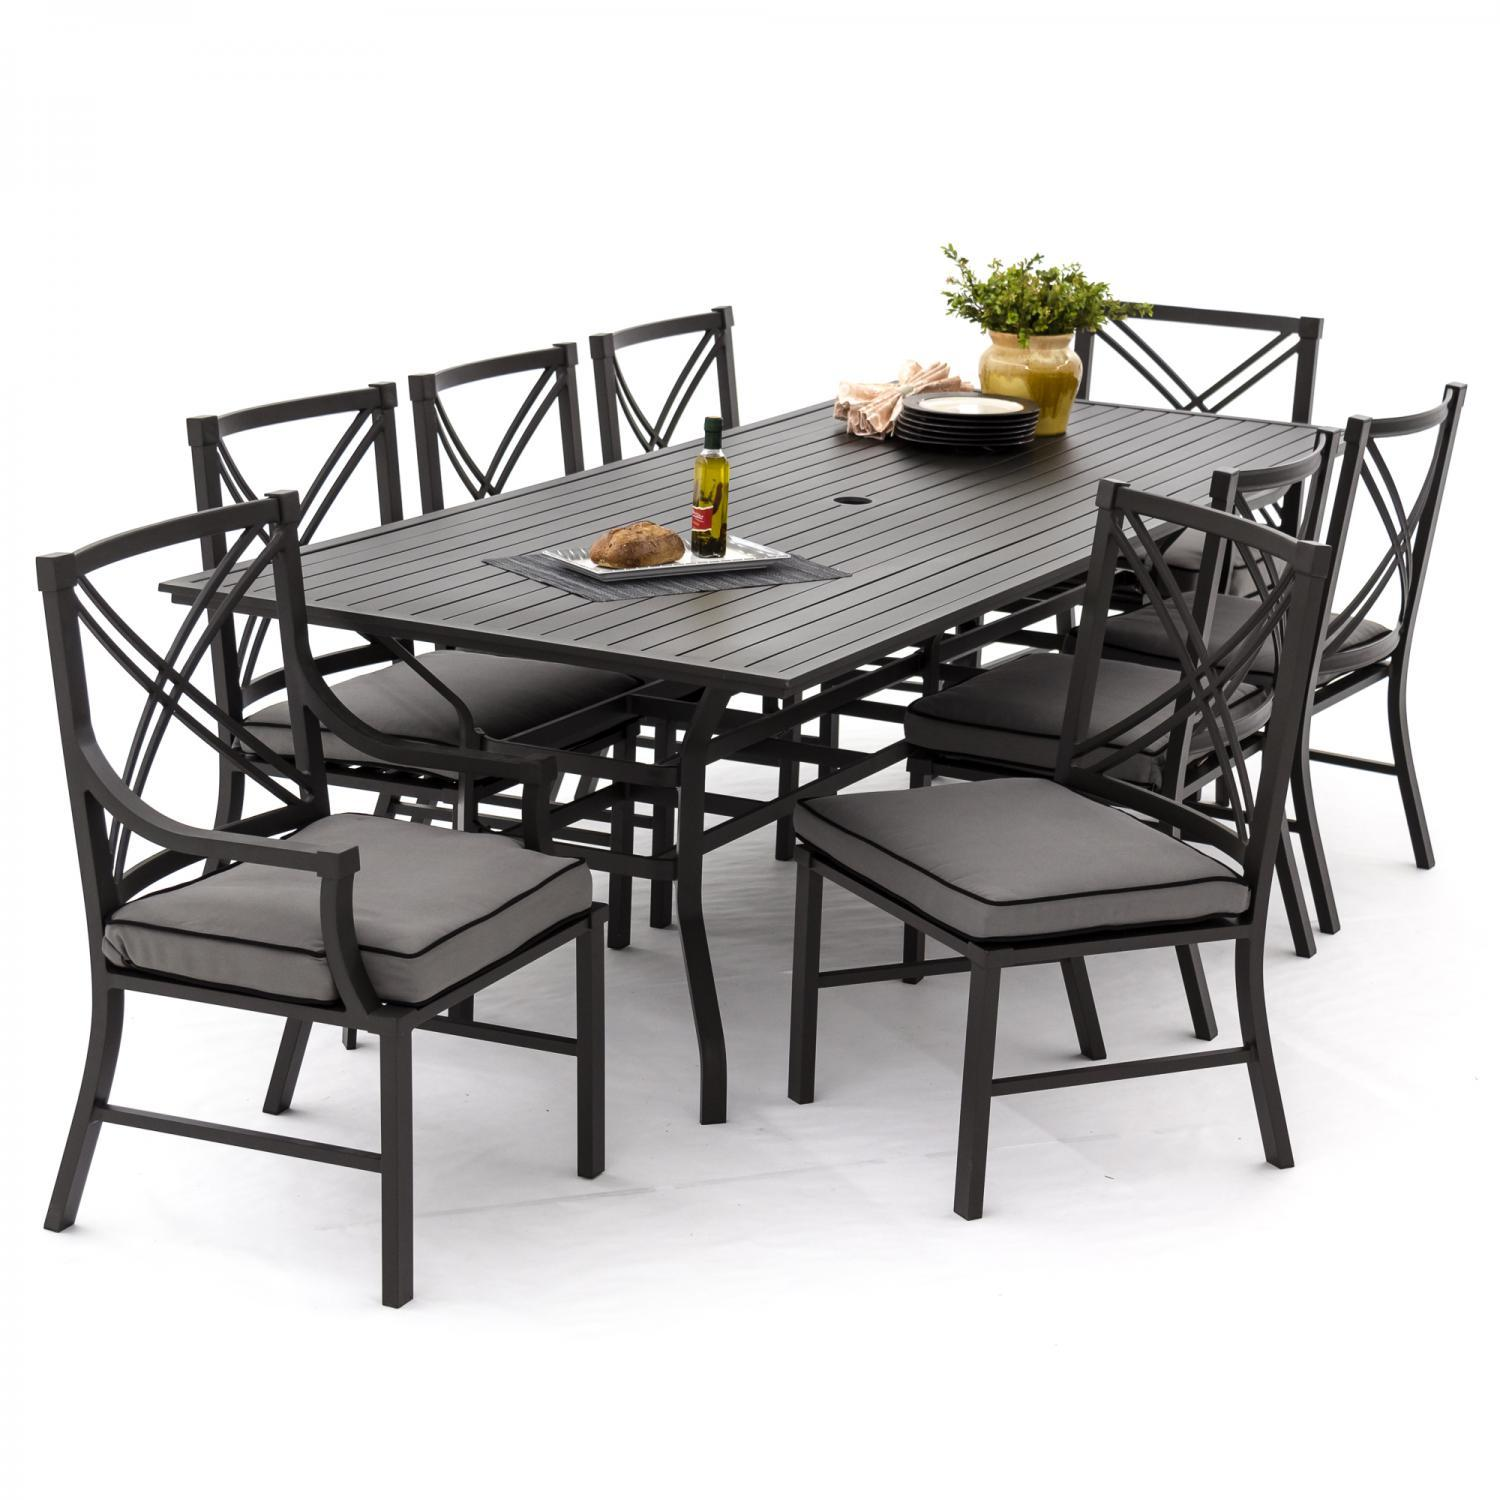 patio dining sets seats 6 photo - 10